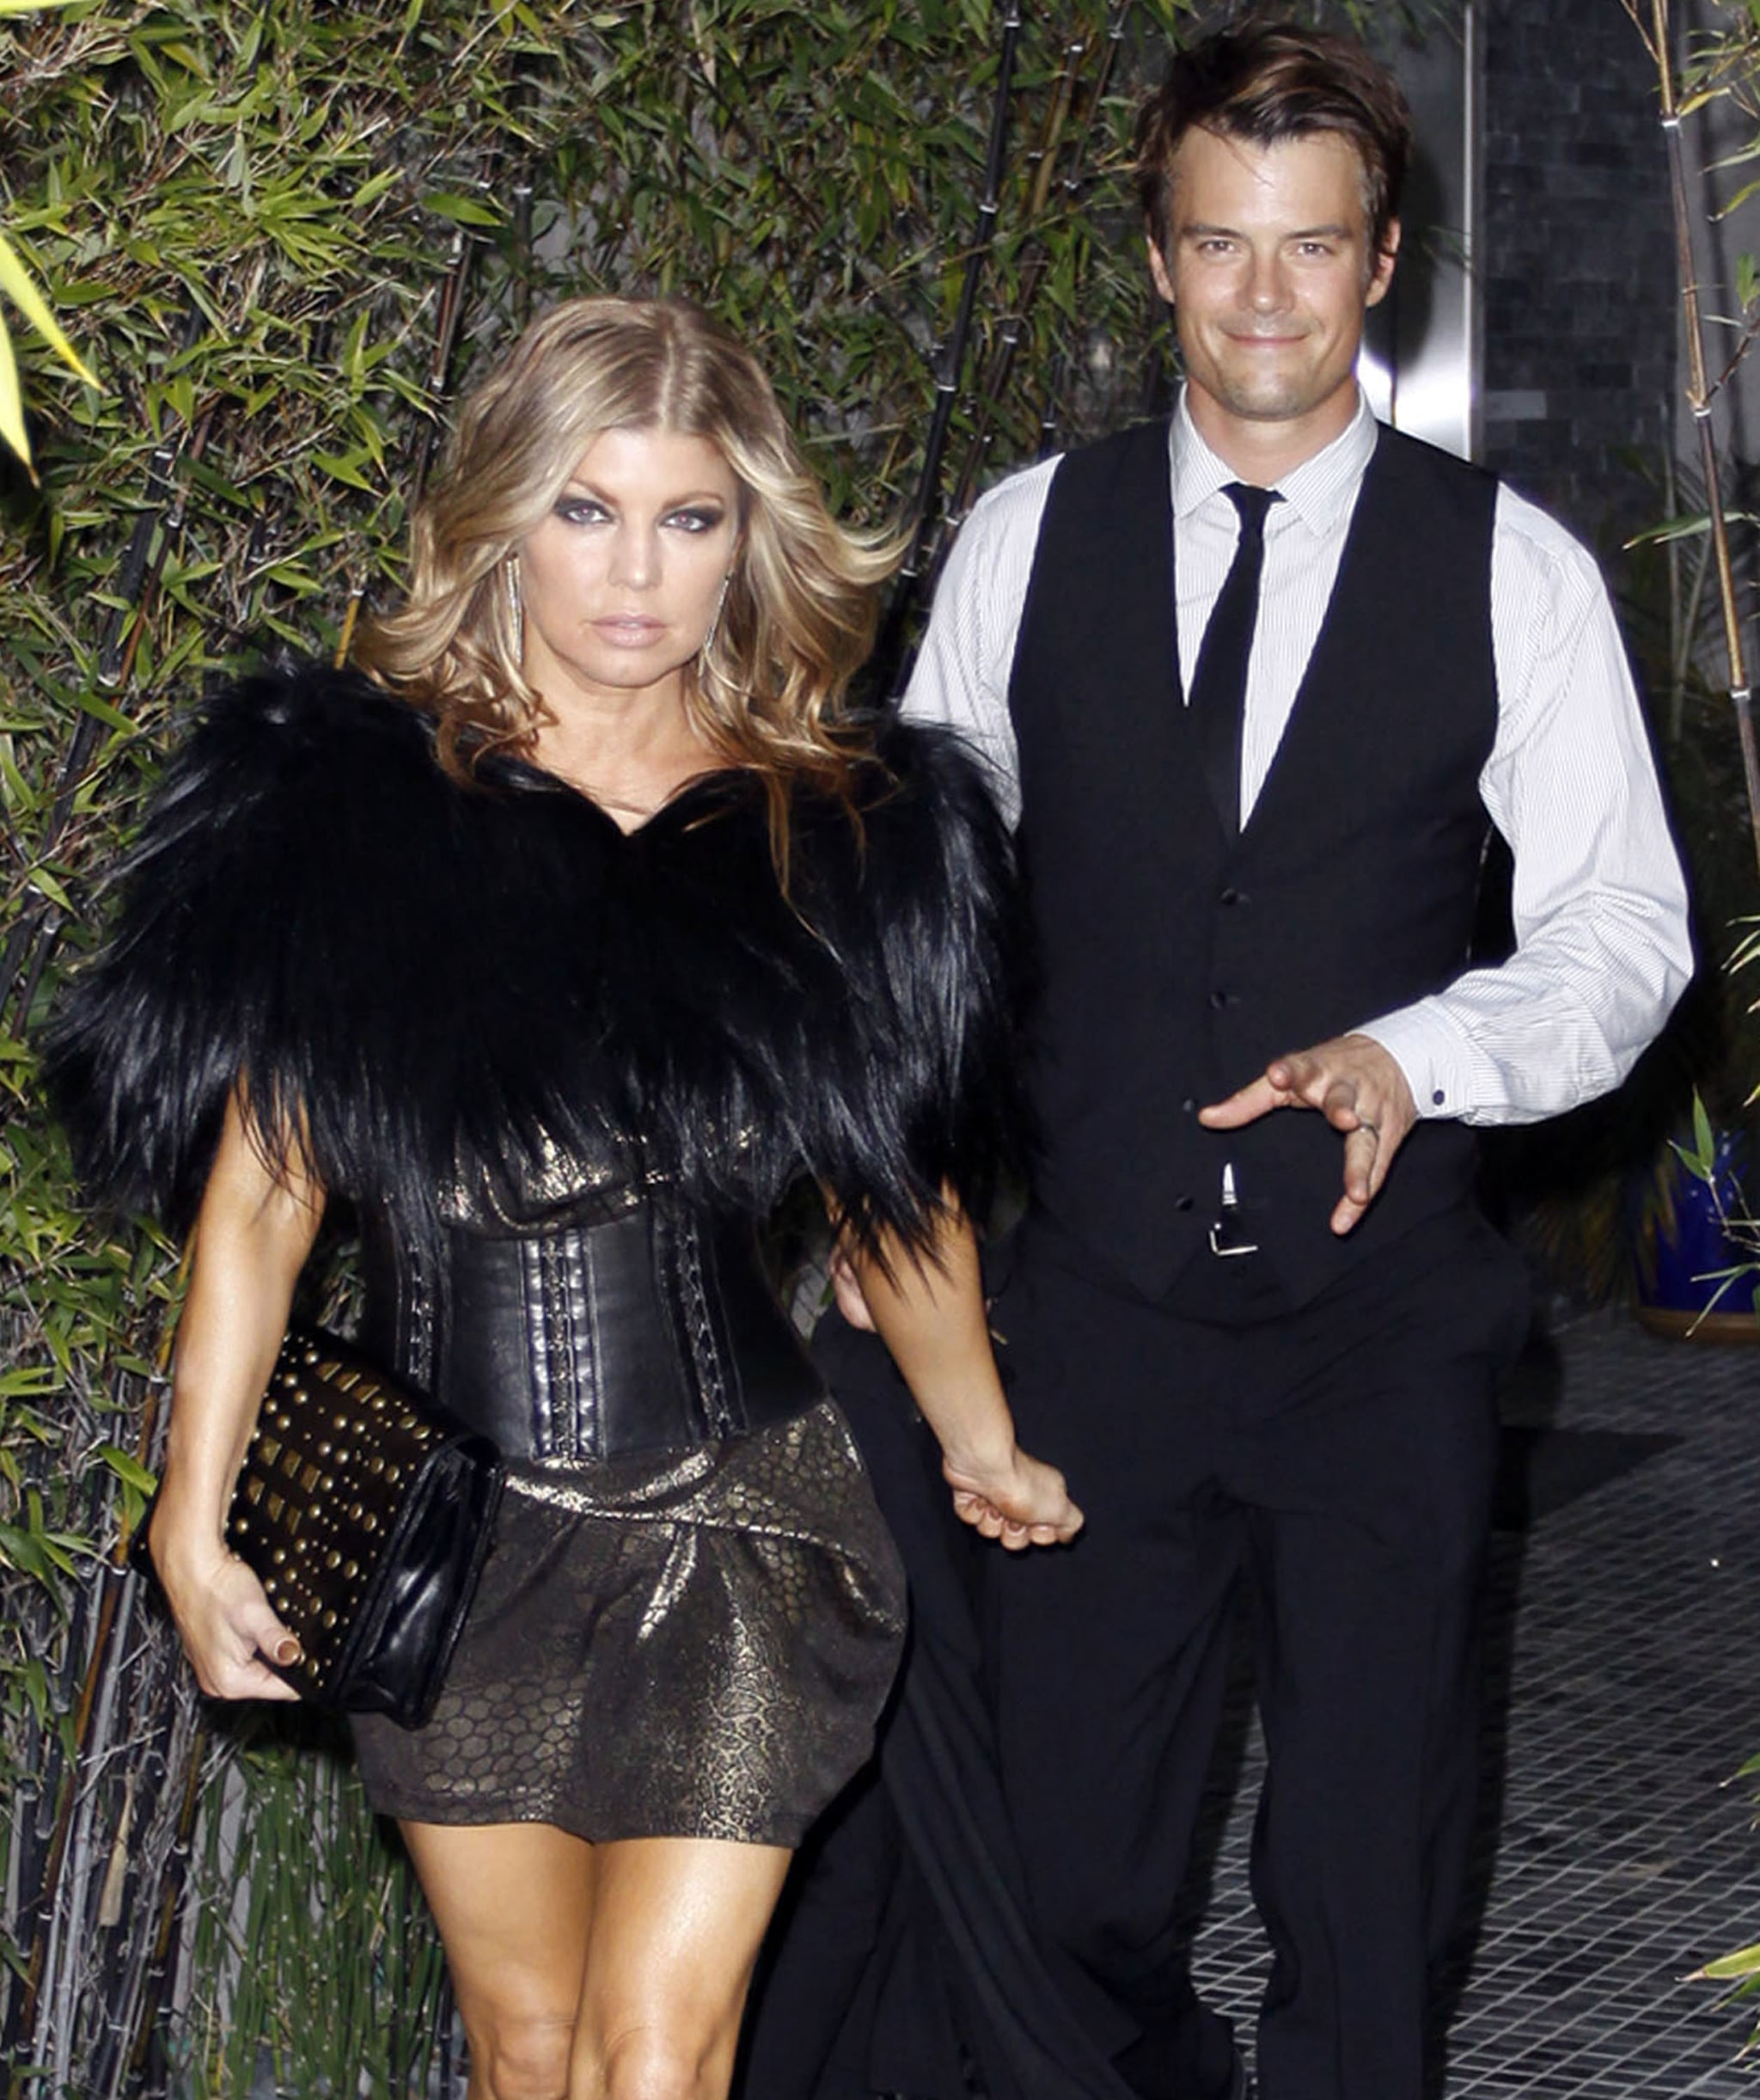 Fergie led the way with Josh Duhamel in March 2011 for her Black Eyed Peas member Keith Harris's wedding in LA.